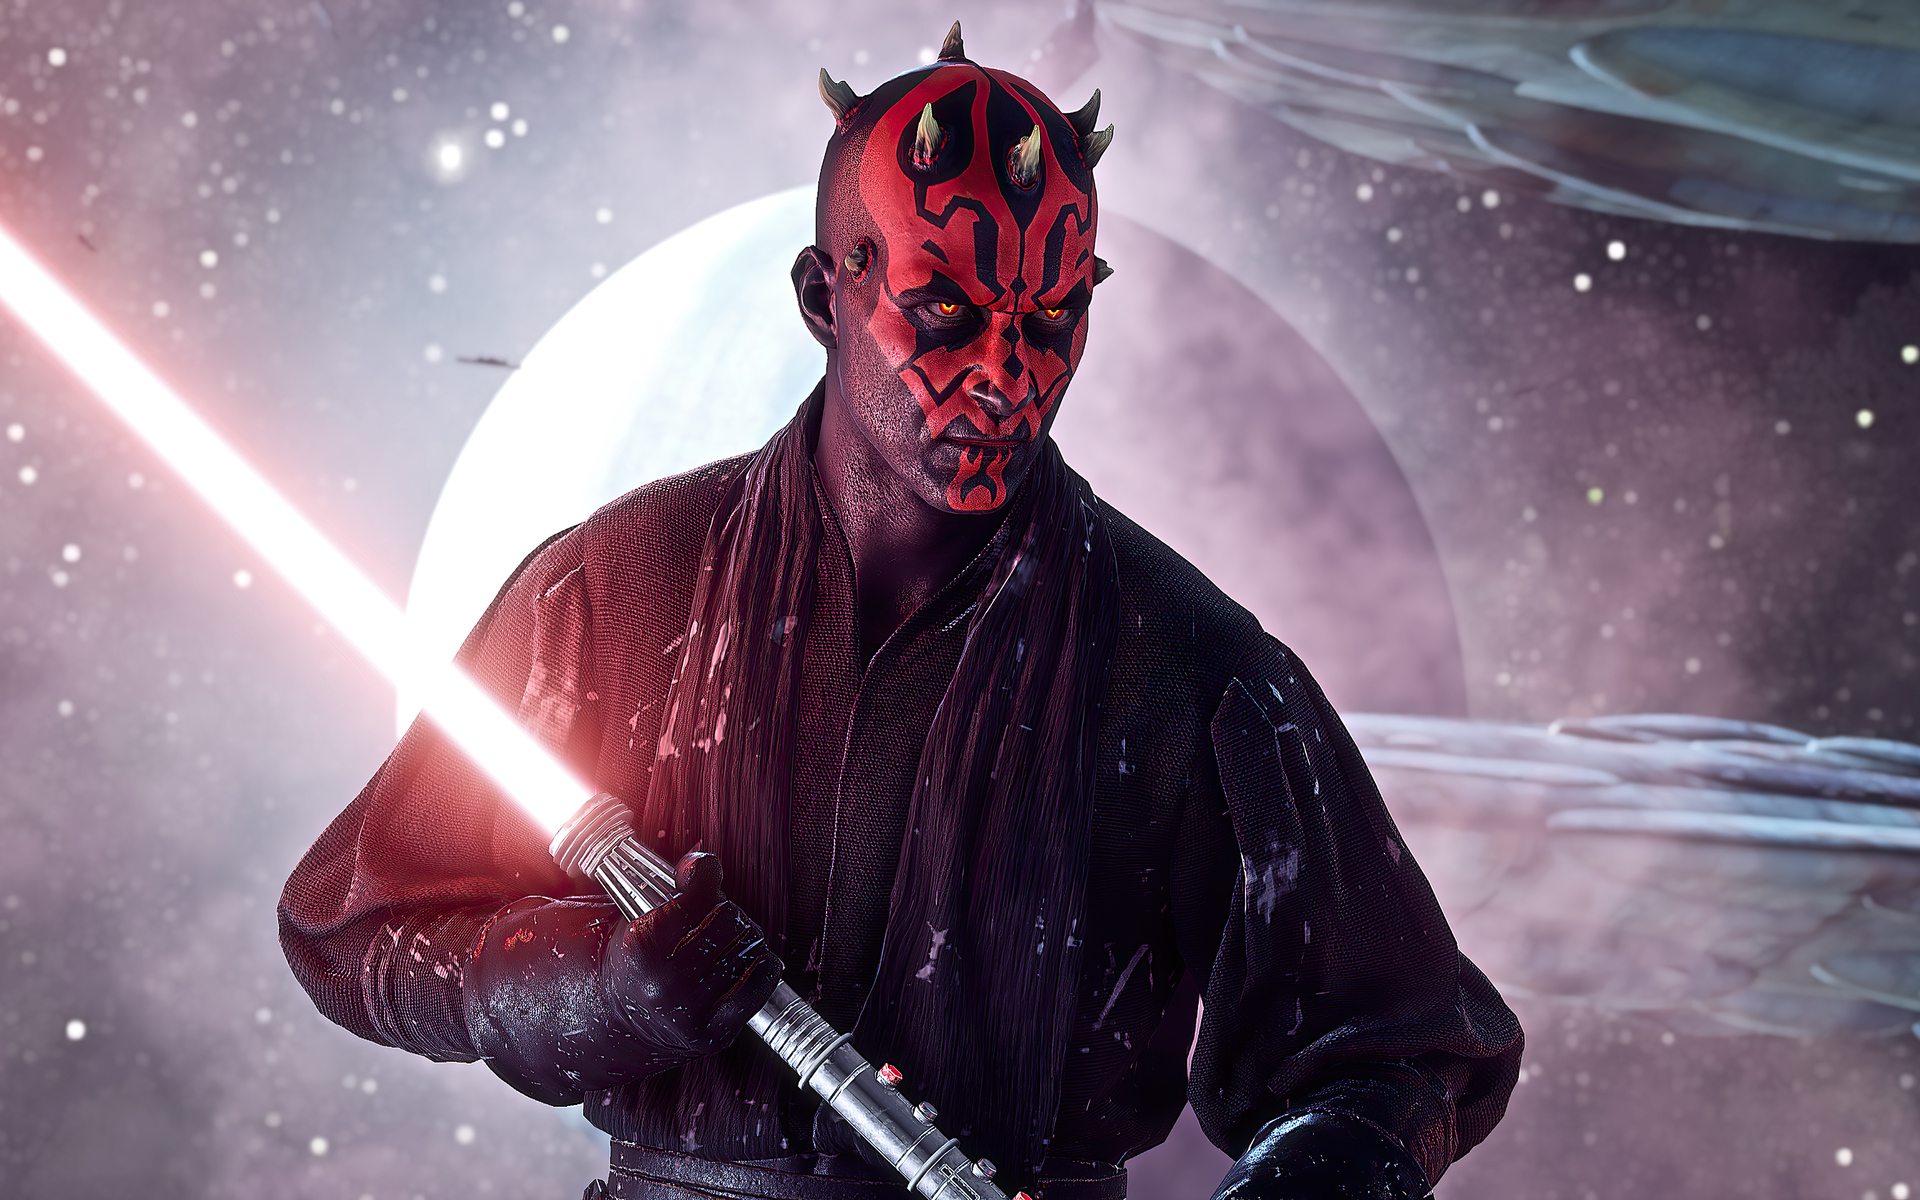 1920x1200 2020 Darth Maul Star Wars Battlefront II 4k ...